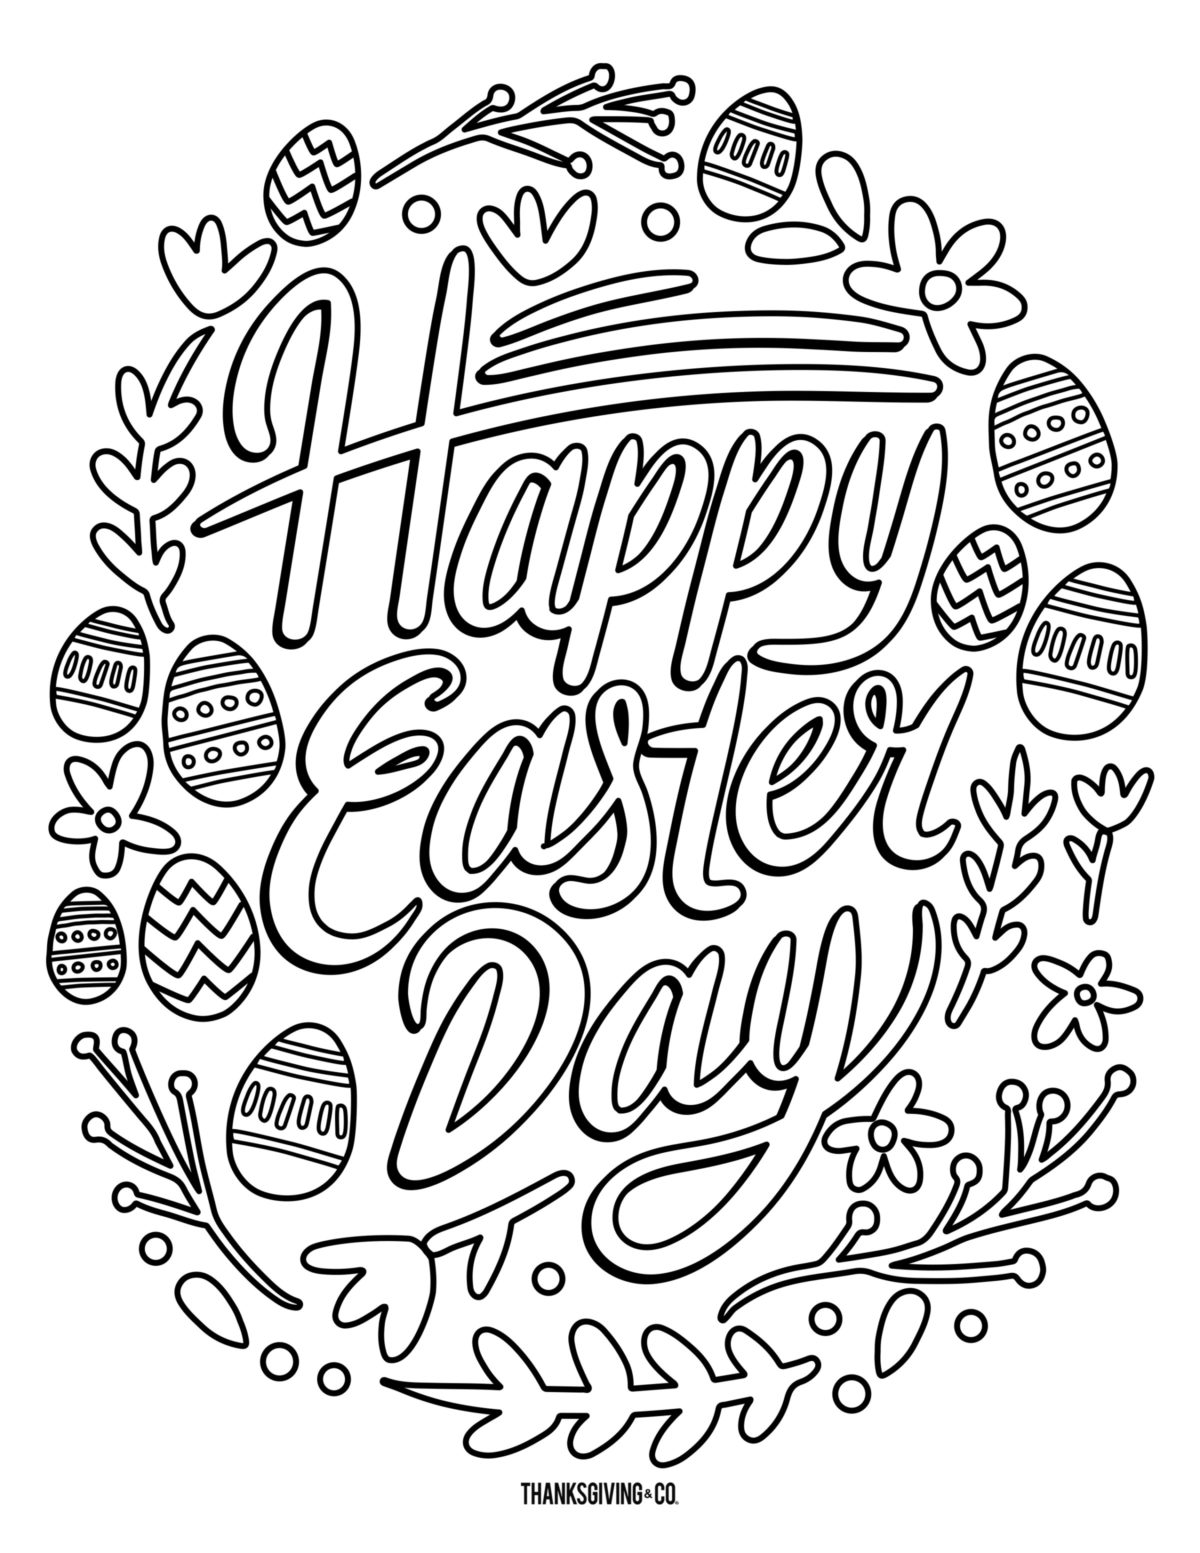 5 free printable Easter coloring pages for adults that will relieve ...